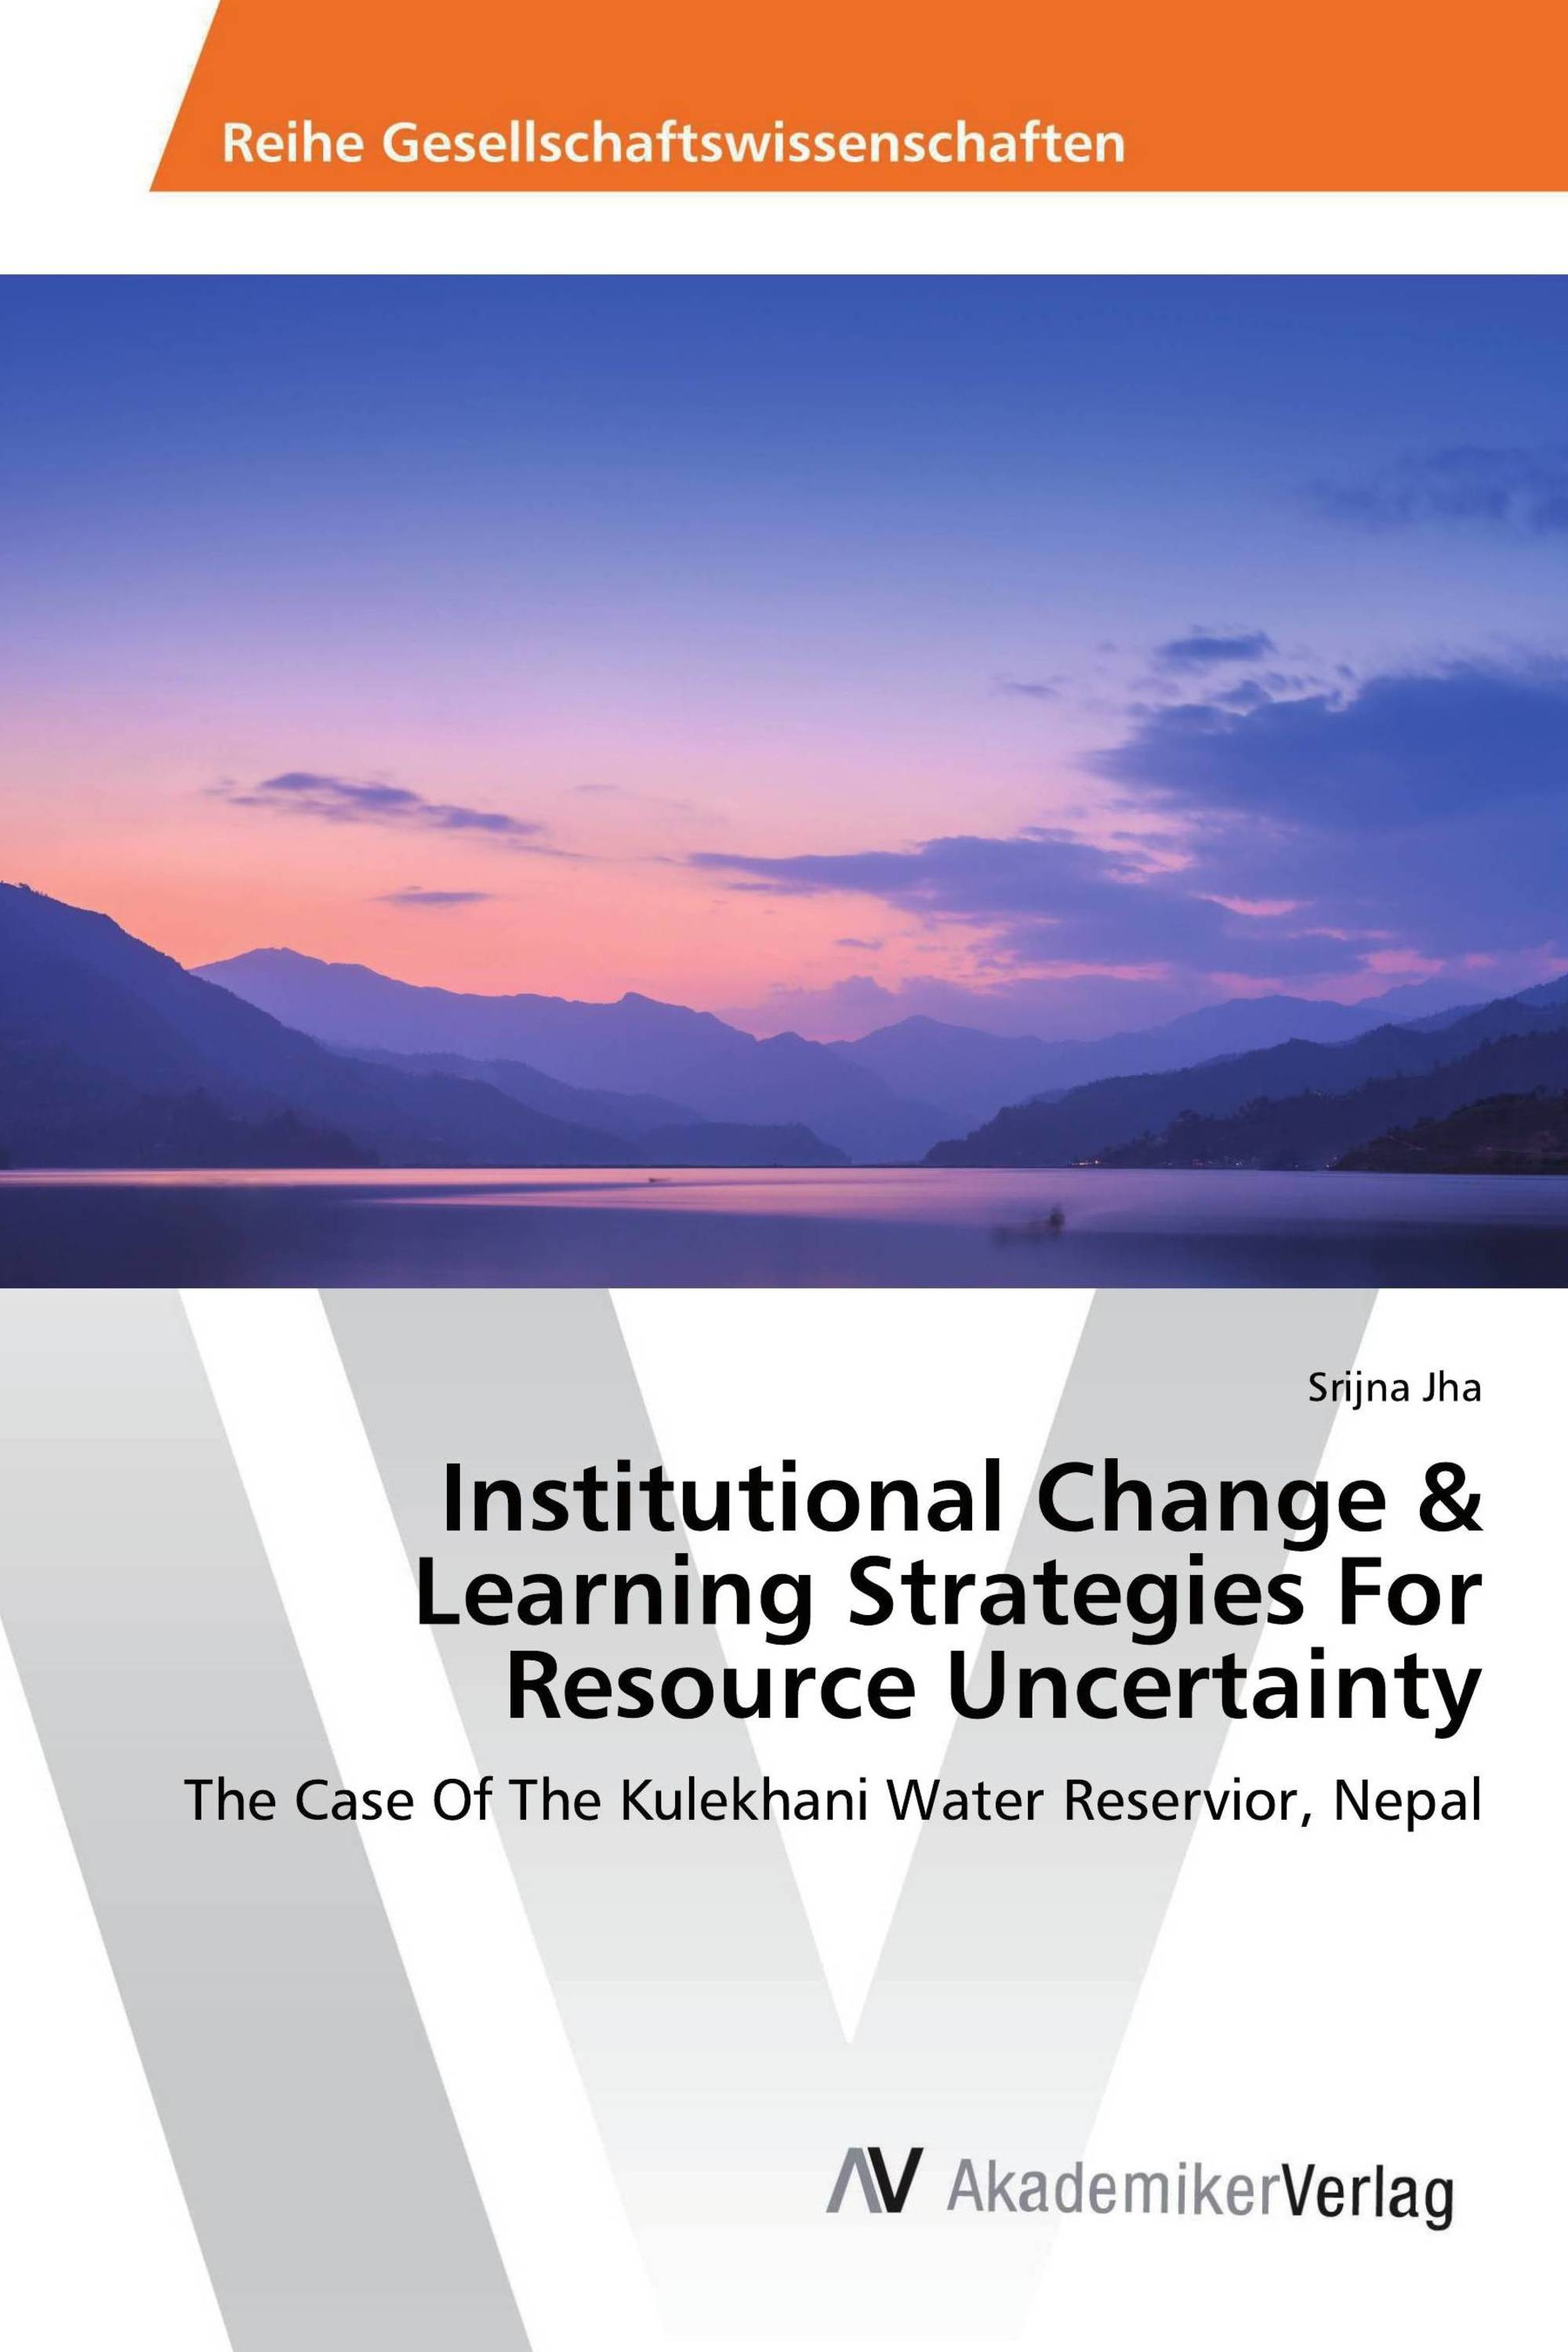 Institutional Change & Learning Strategies For Resource Uncertainty